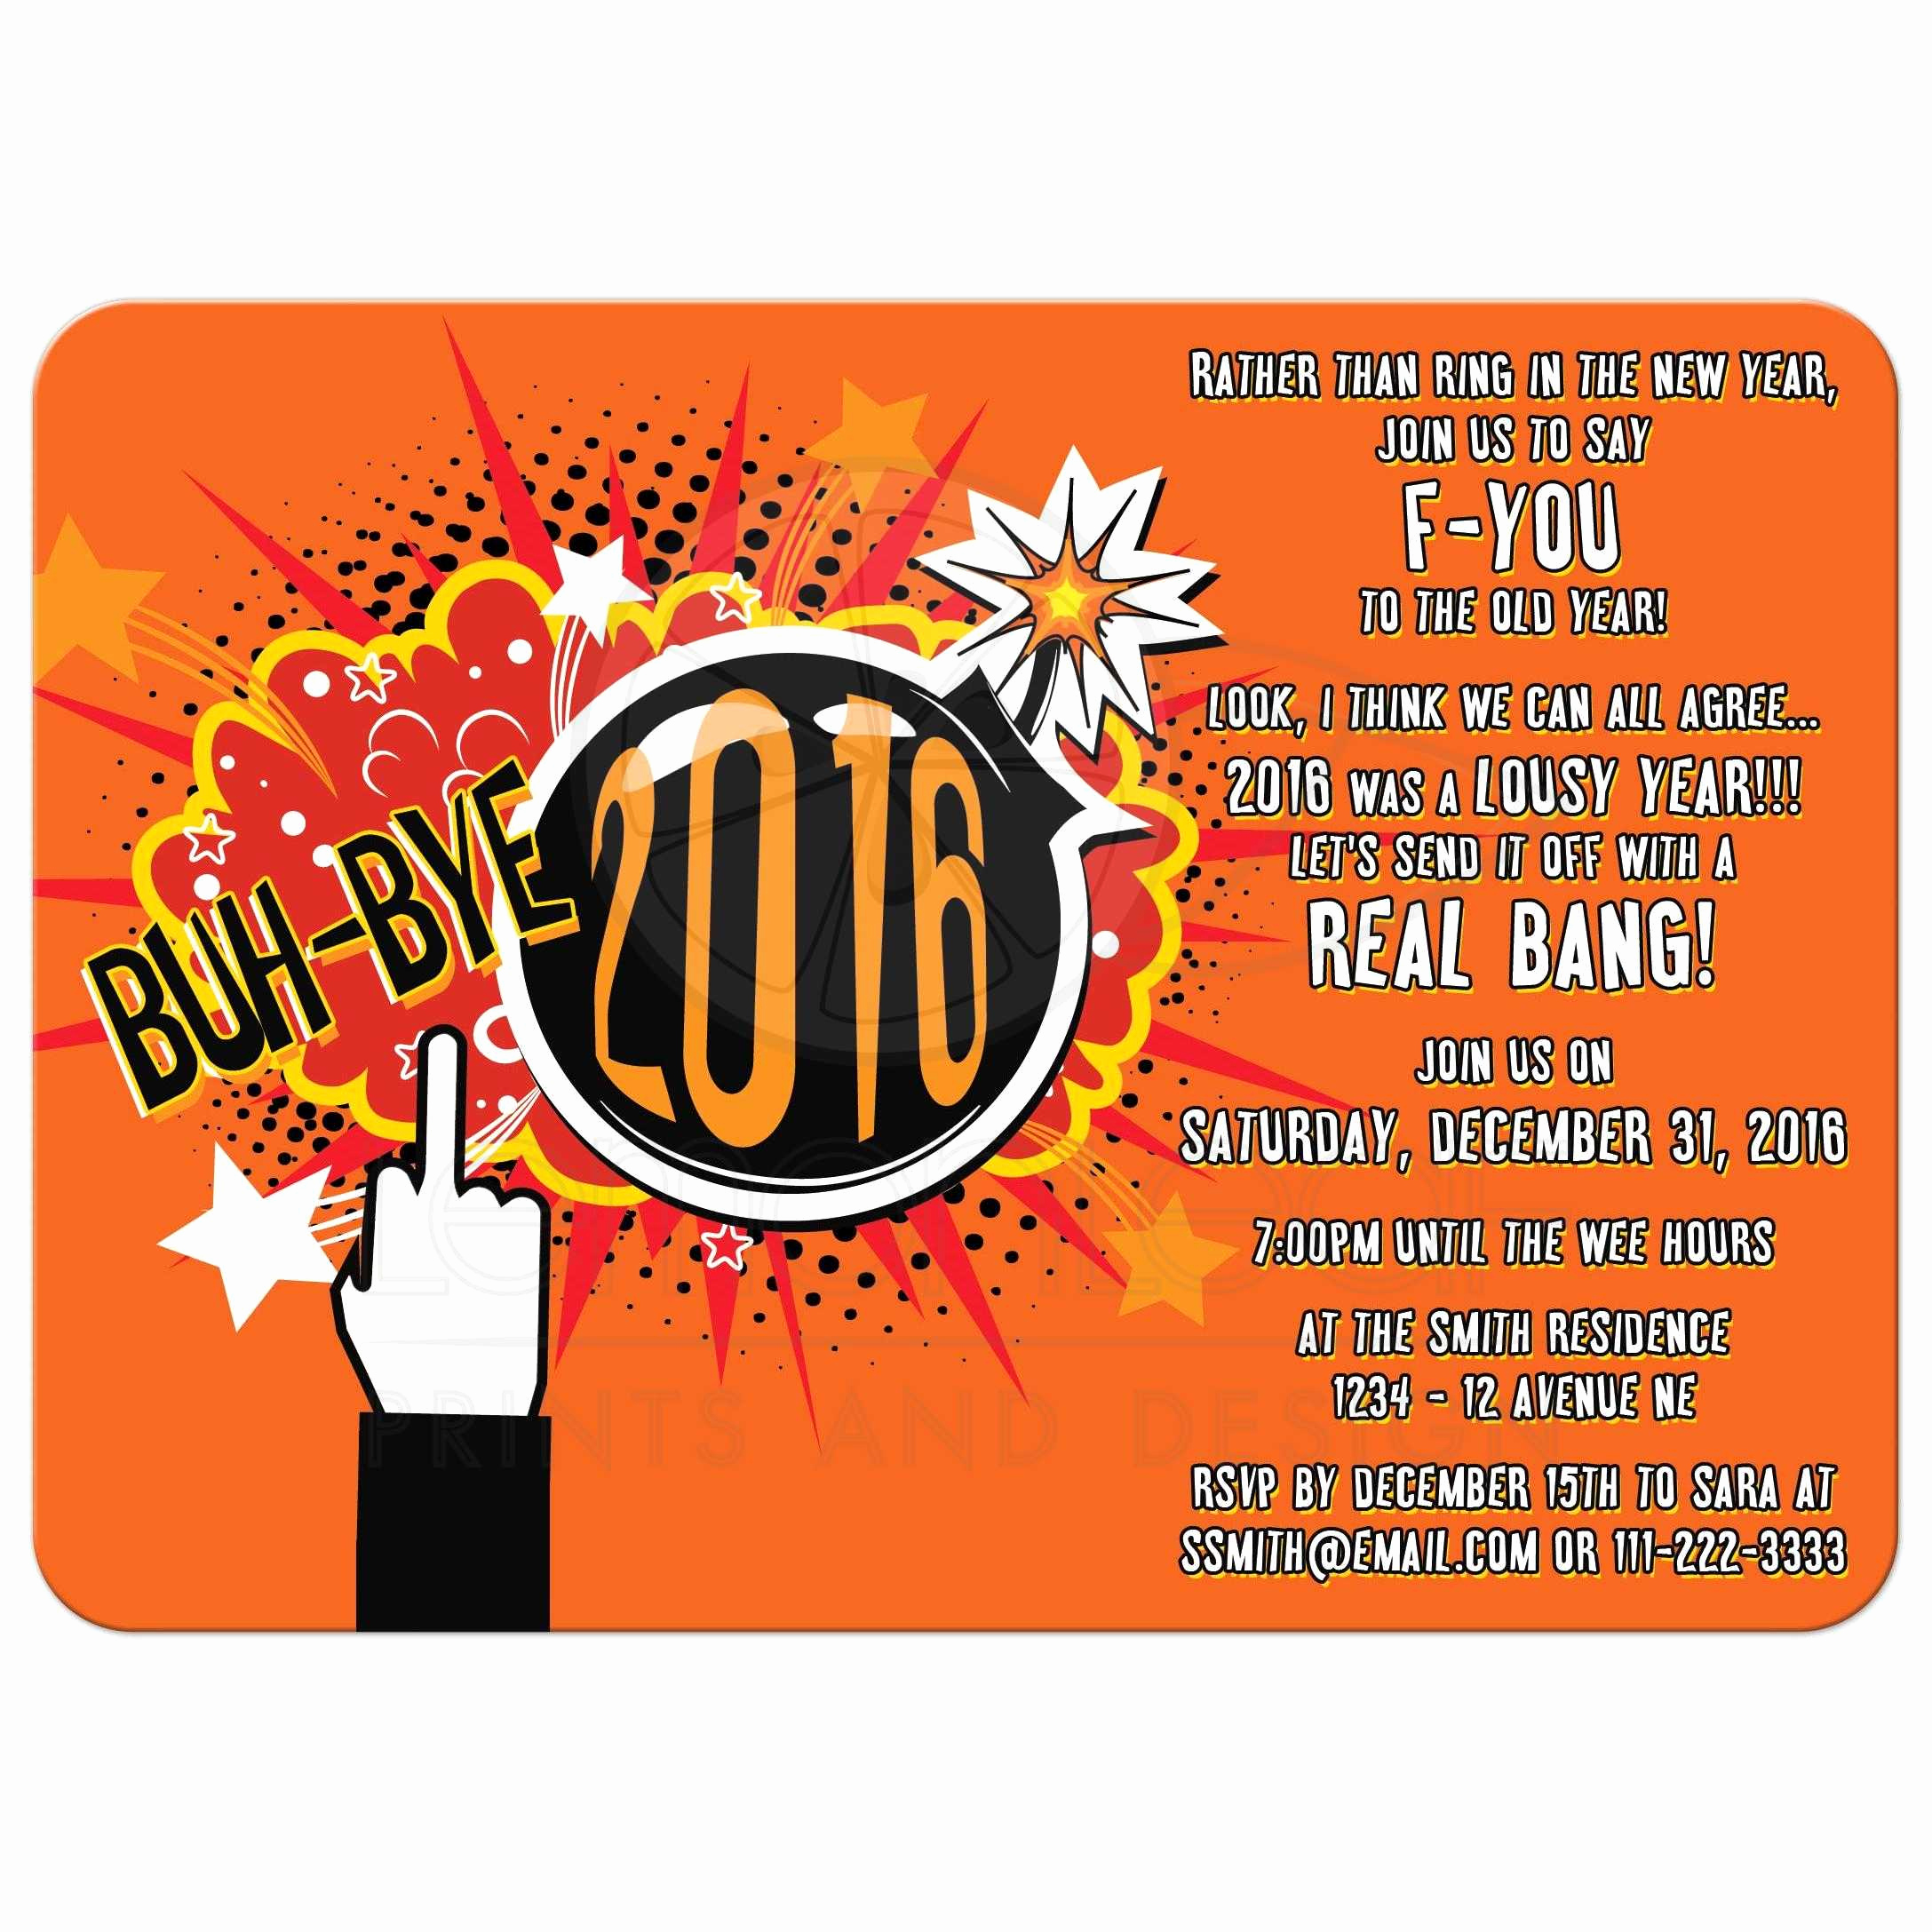 New Year Invitation Wording Lovely Novelty Blow Up 2016 Rude New Years Eve Party Invitation